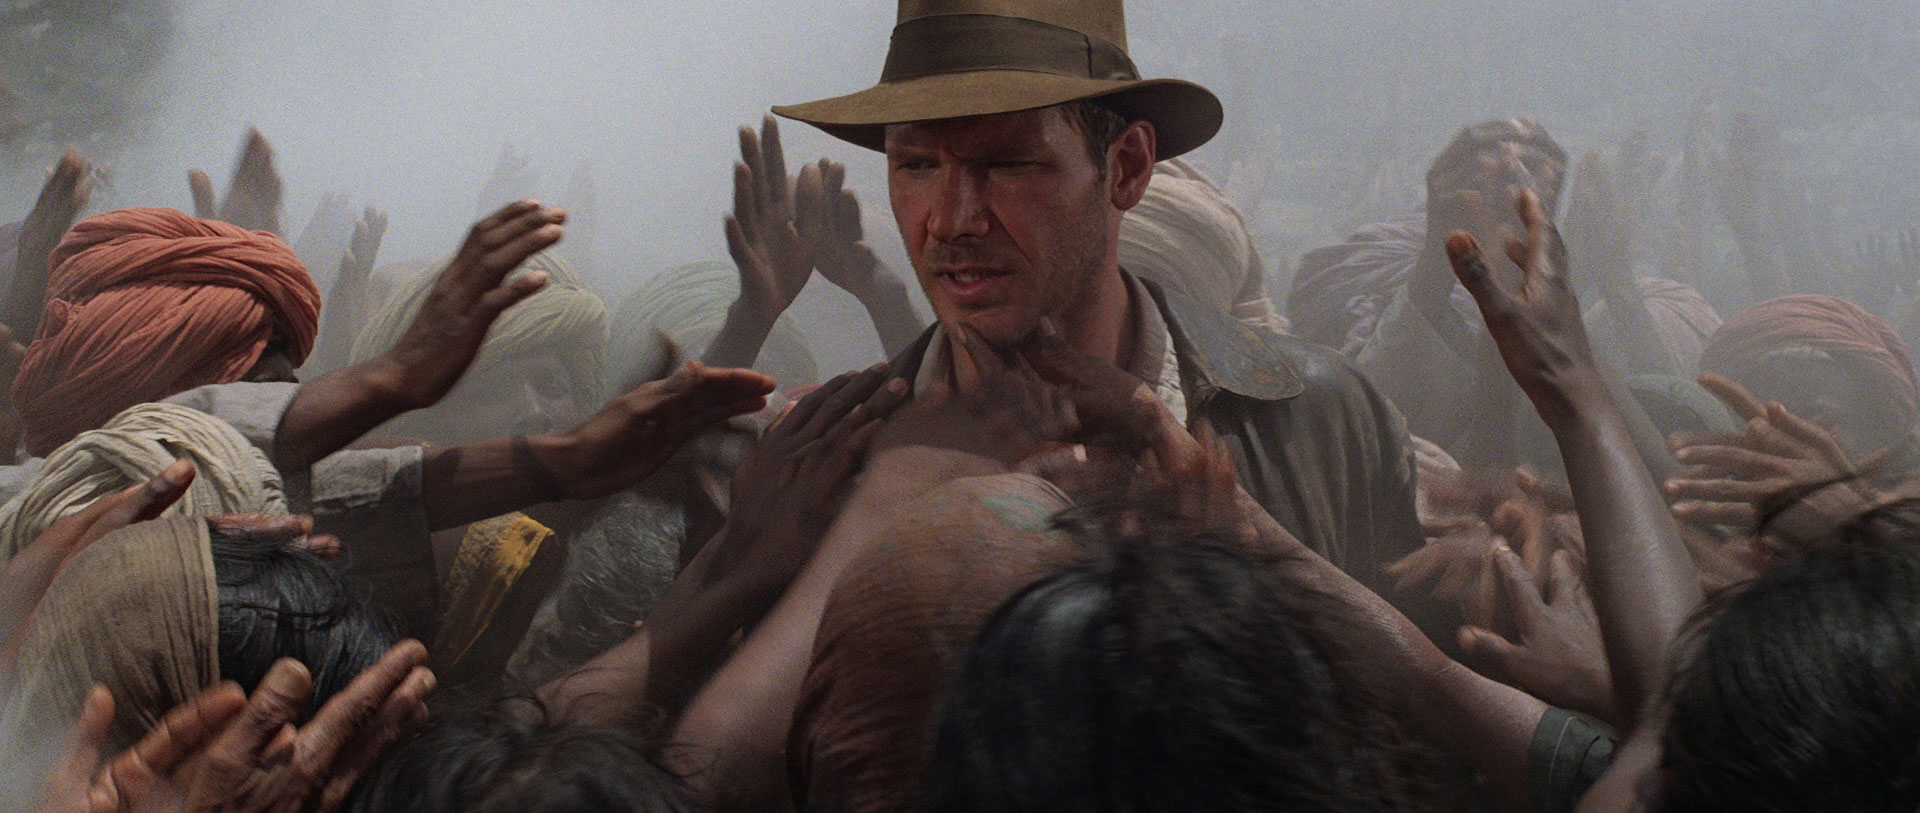 Not Sinking But Crashing: Indiana Jones and the Temple of